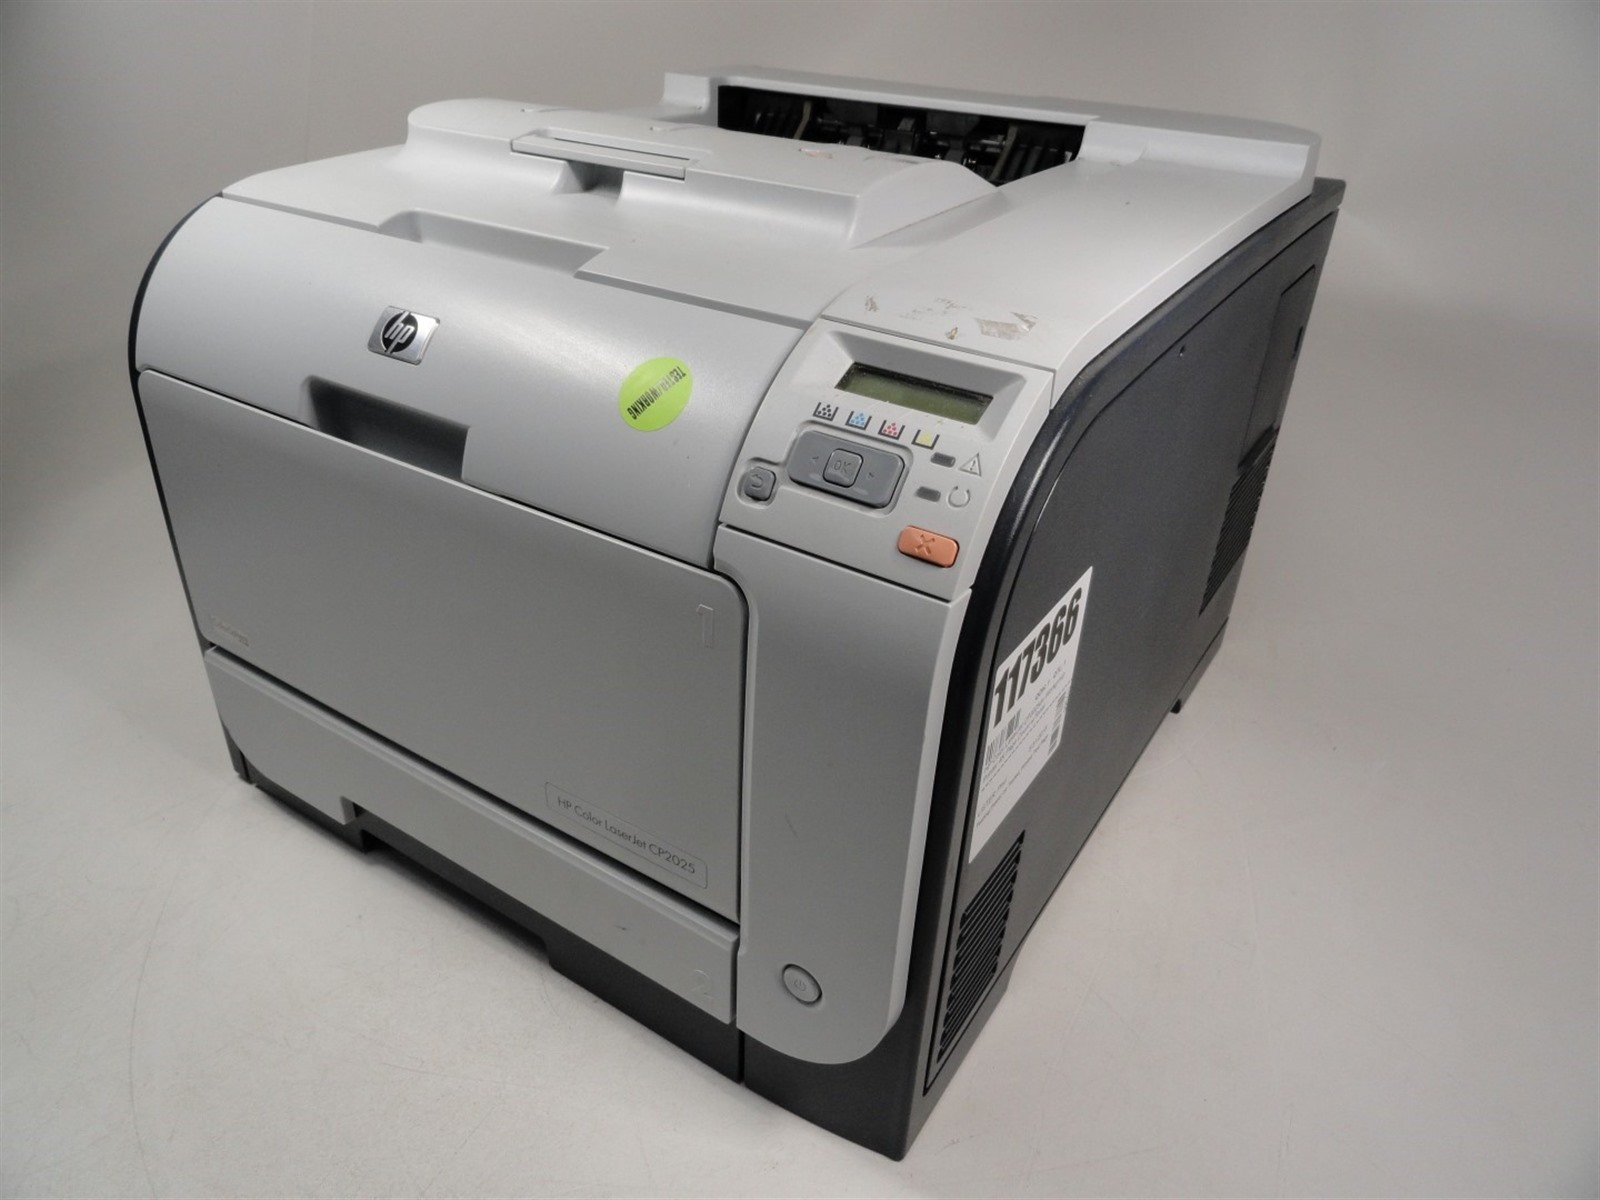 Details about HP Color LaserJet CP2025dn Workgroup Printer 4K Page Count  with Toner